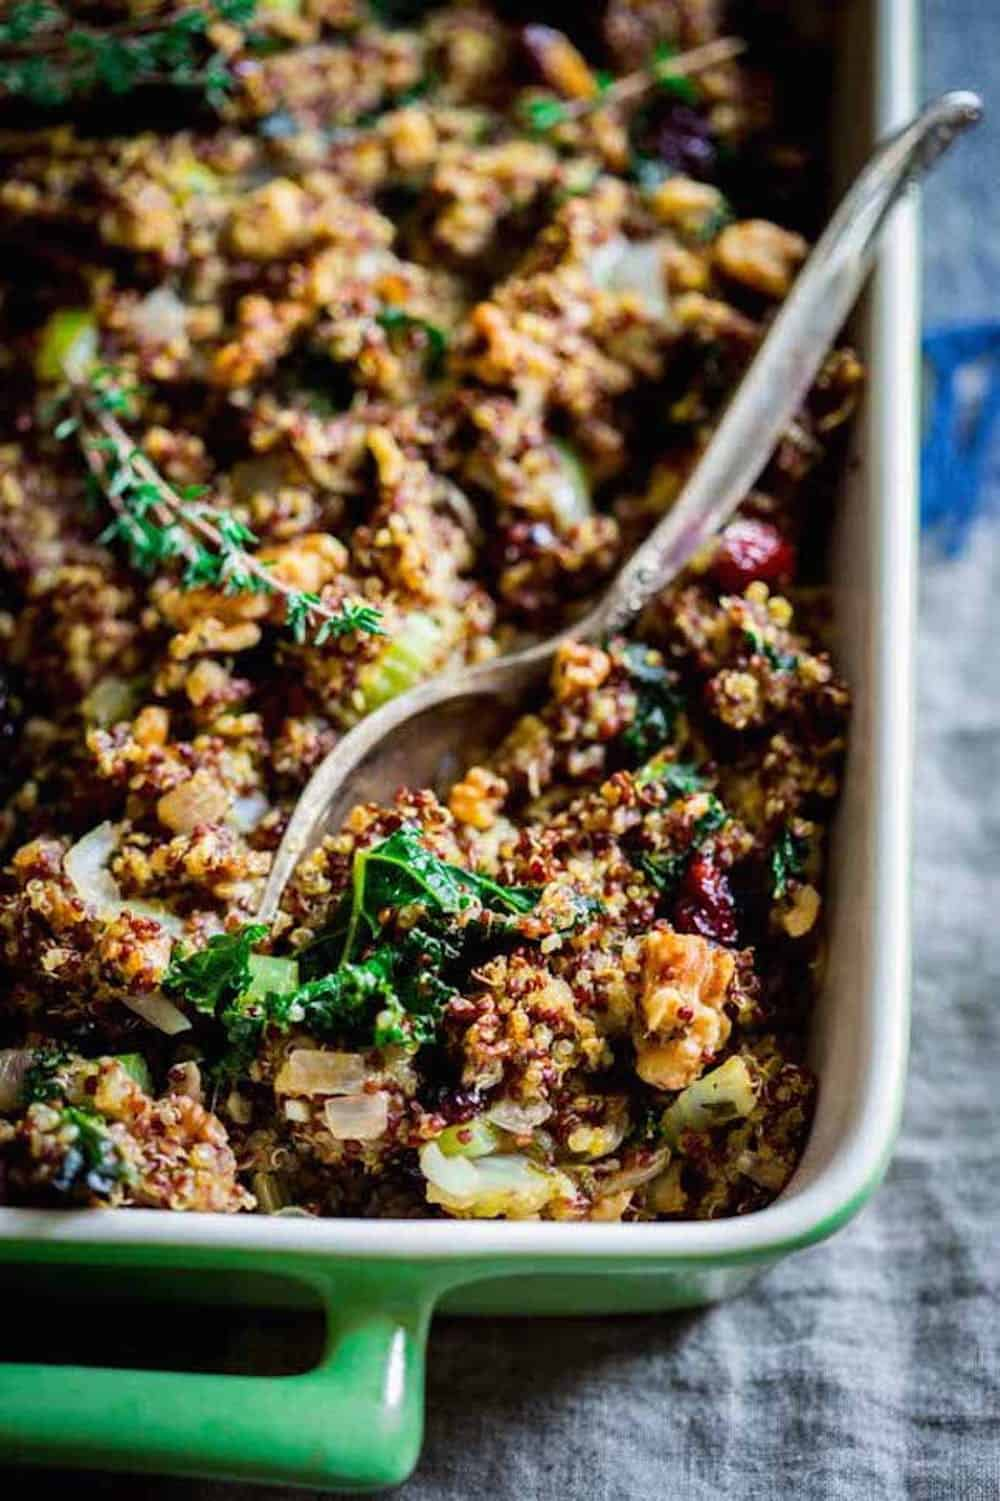 Gluten free walnut and kale quinoa stuffing